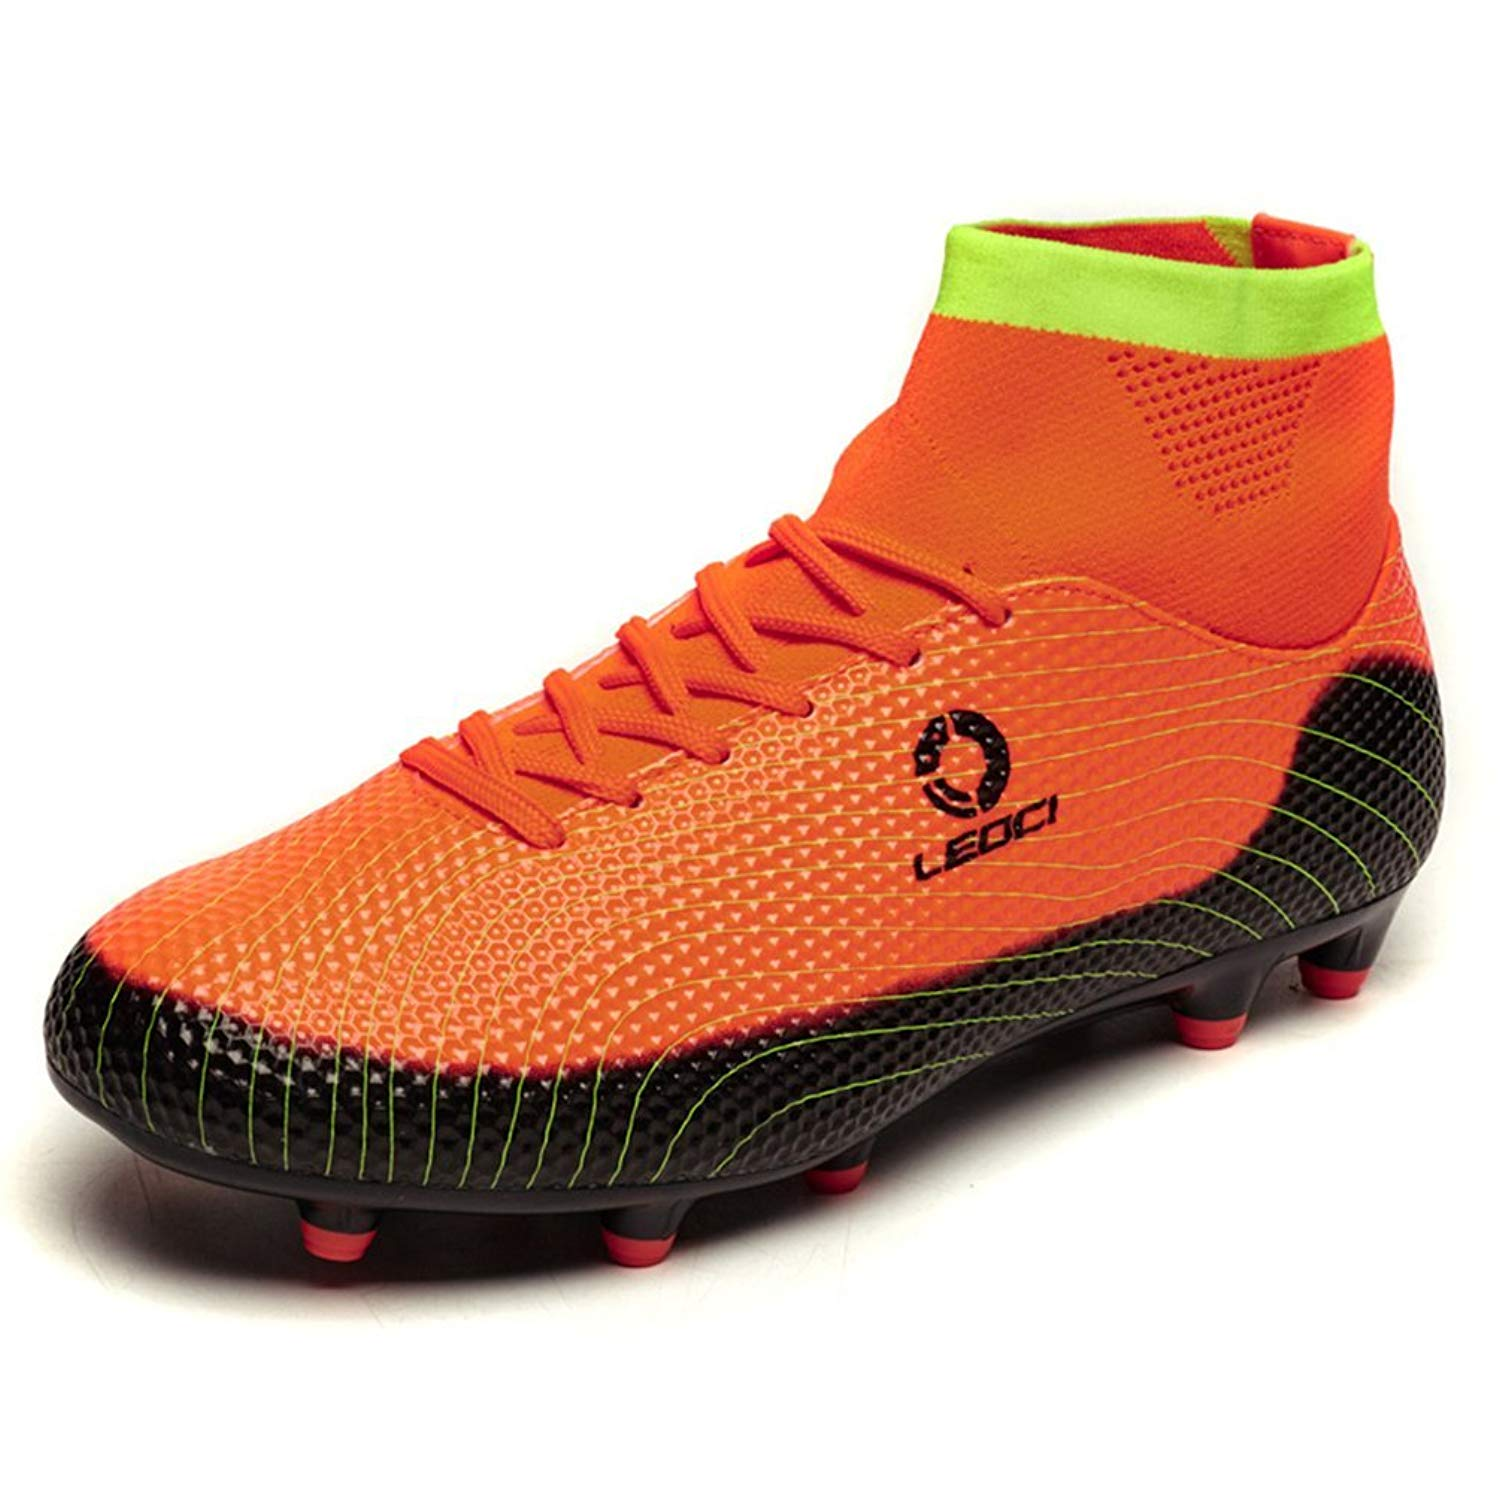 8e3cb86bf Get Quotations · LEODI High Ankle Long Spikes Soccer Shoes Men Boys Outdoor  Breathable Football Boots Soccer Cleats for